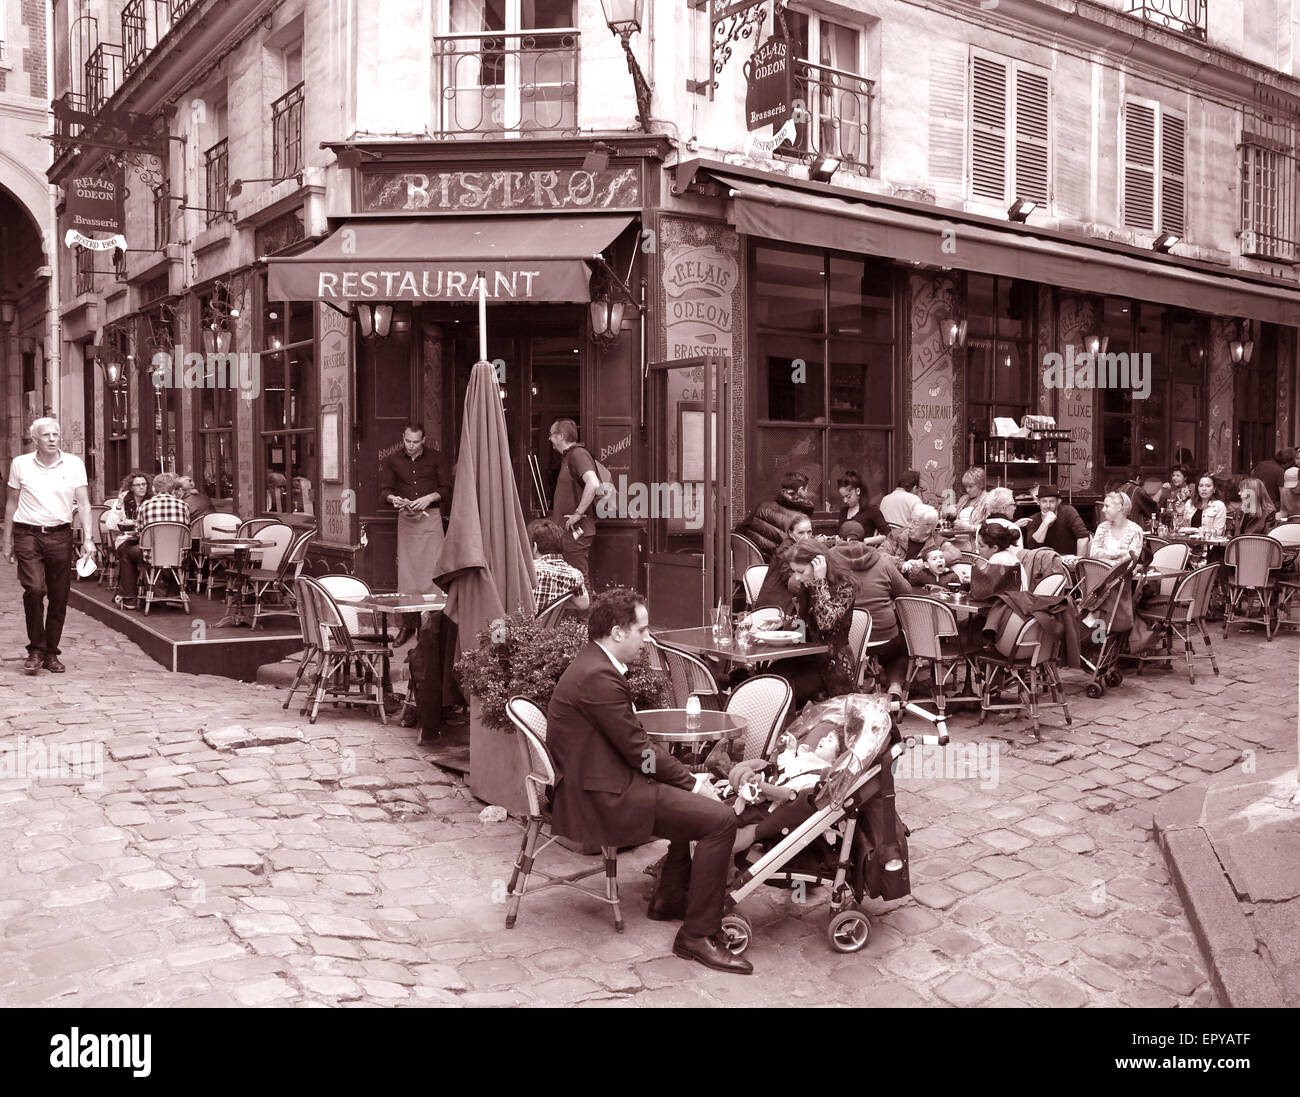 Paris restaurant bistro teracce.father and child - Stock Image